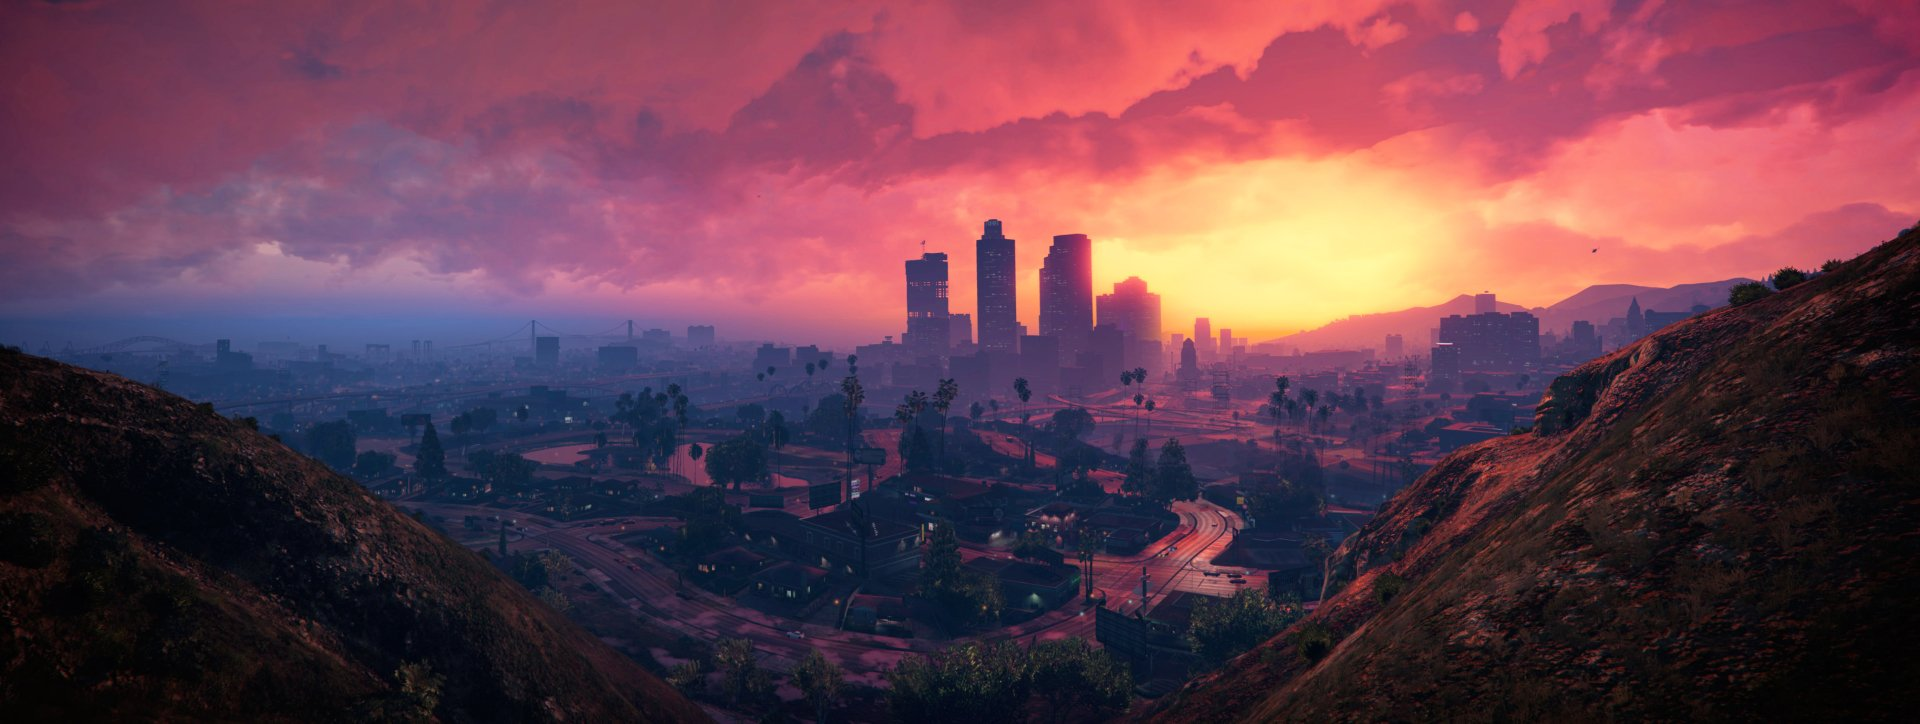 17 Los Santos HD Wallpapers  Background Images - Wallpaper Abyss